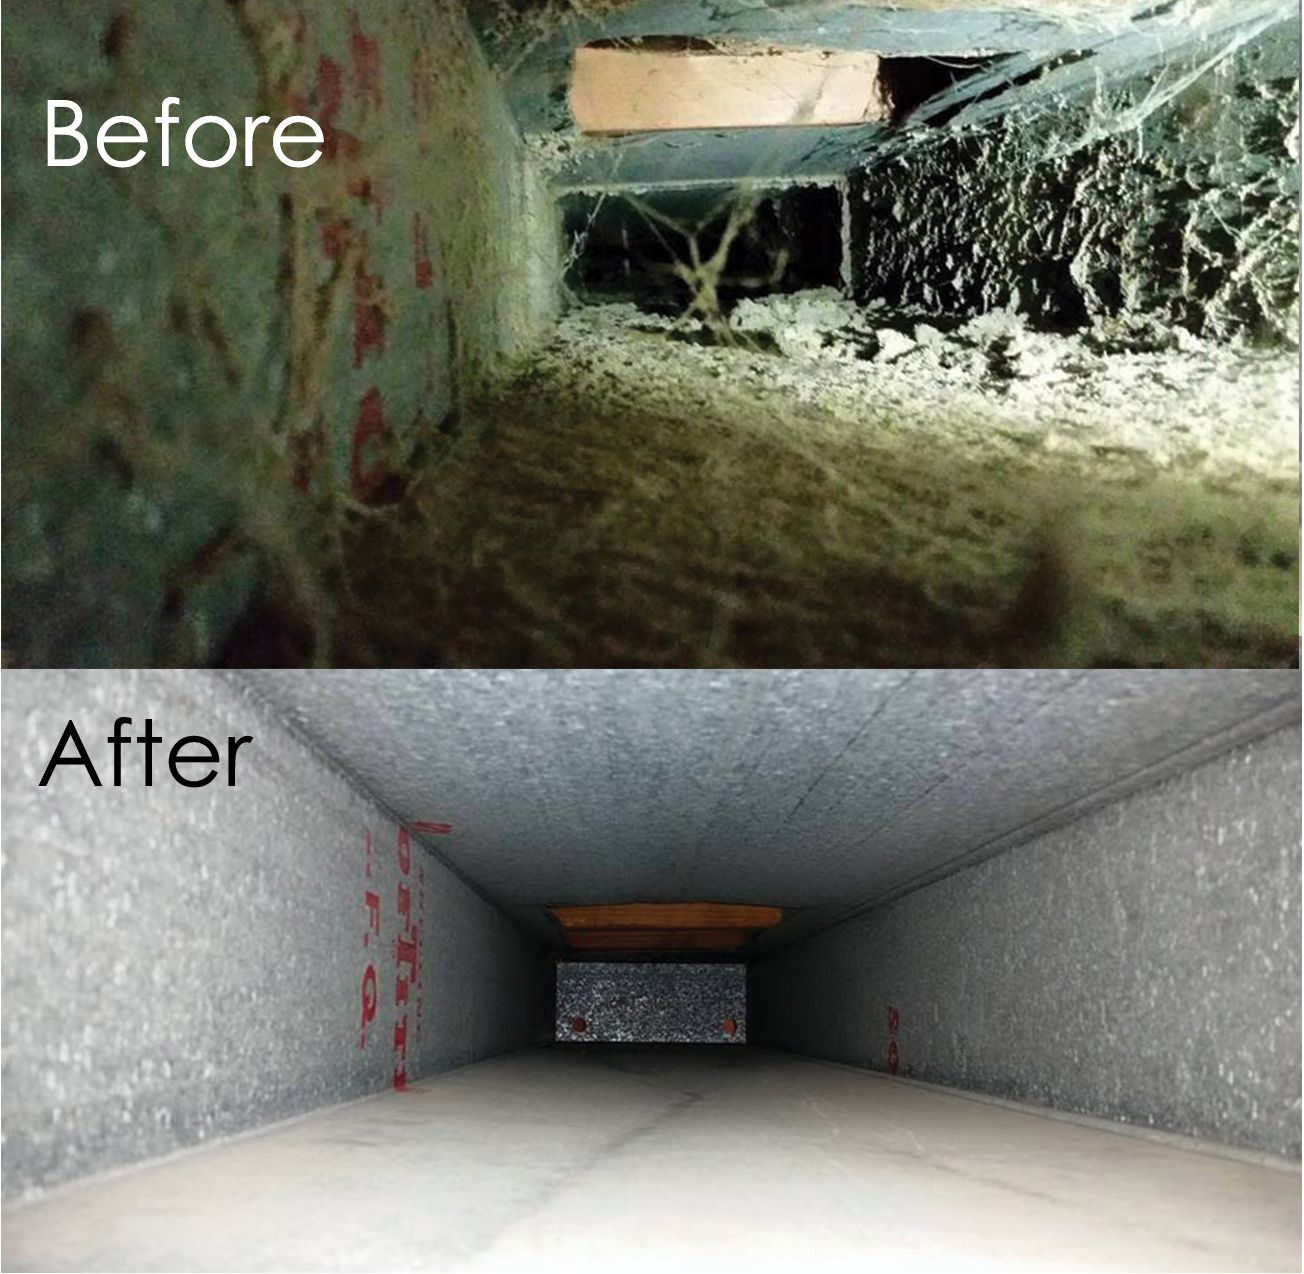 5 Benefits of HVAC Duct Cleaning Works Only Under These